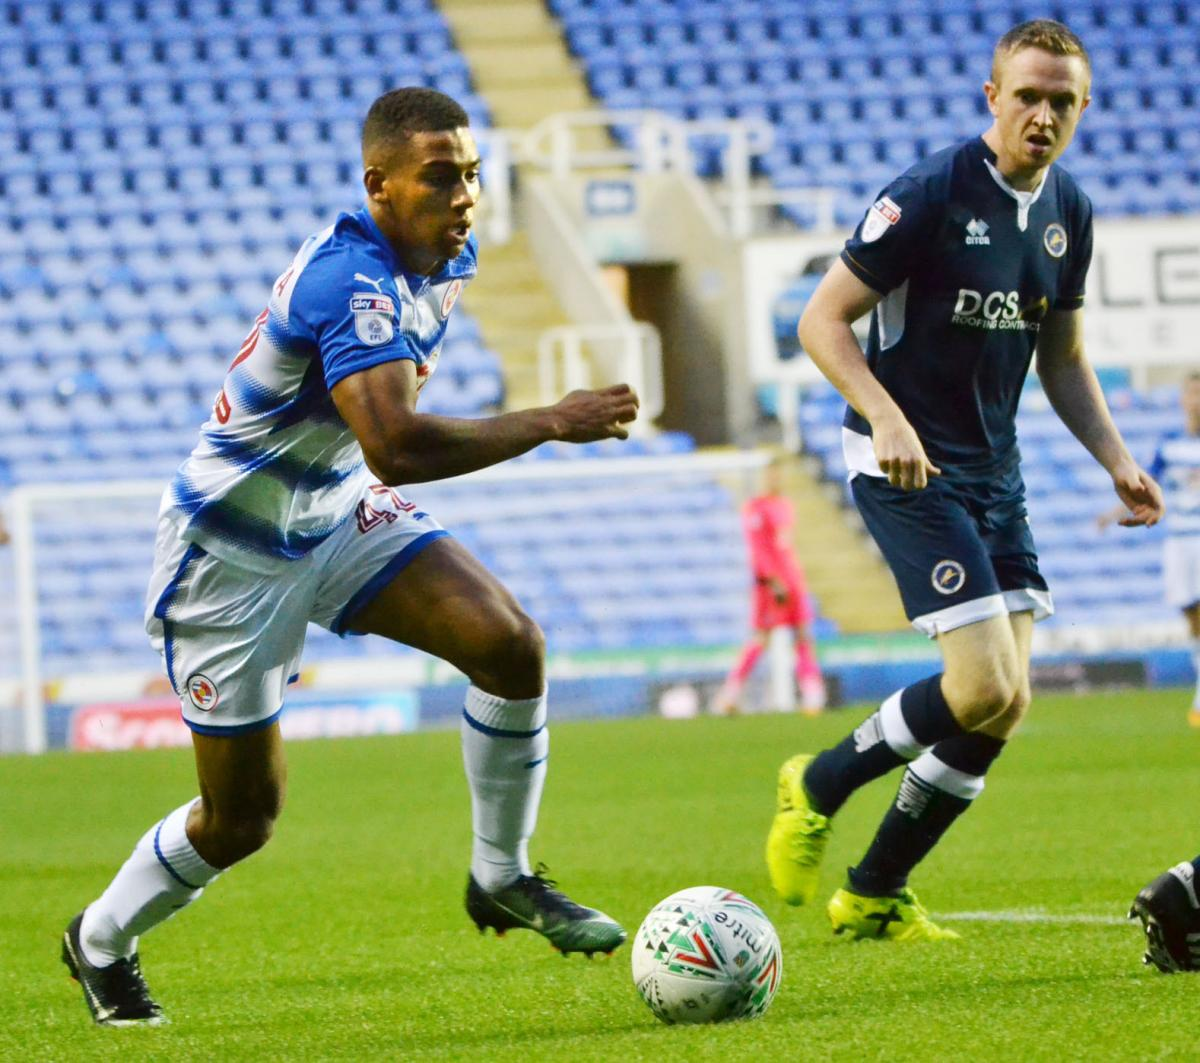 READING FC: Andy Rinomhota bags an injury-time equaliser as